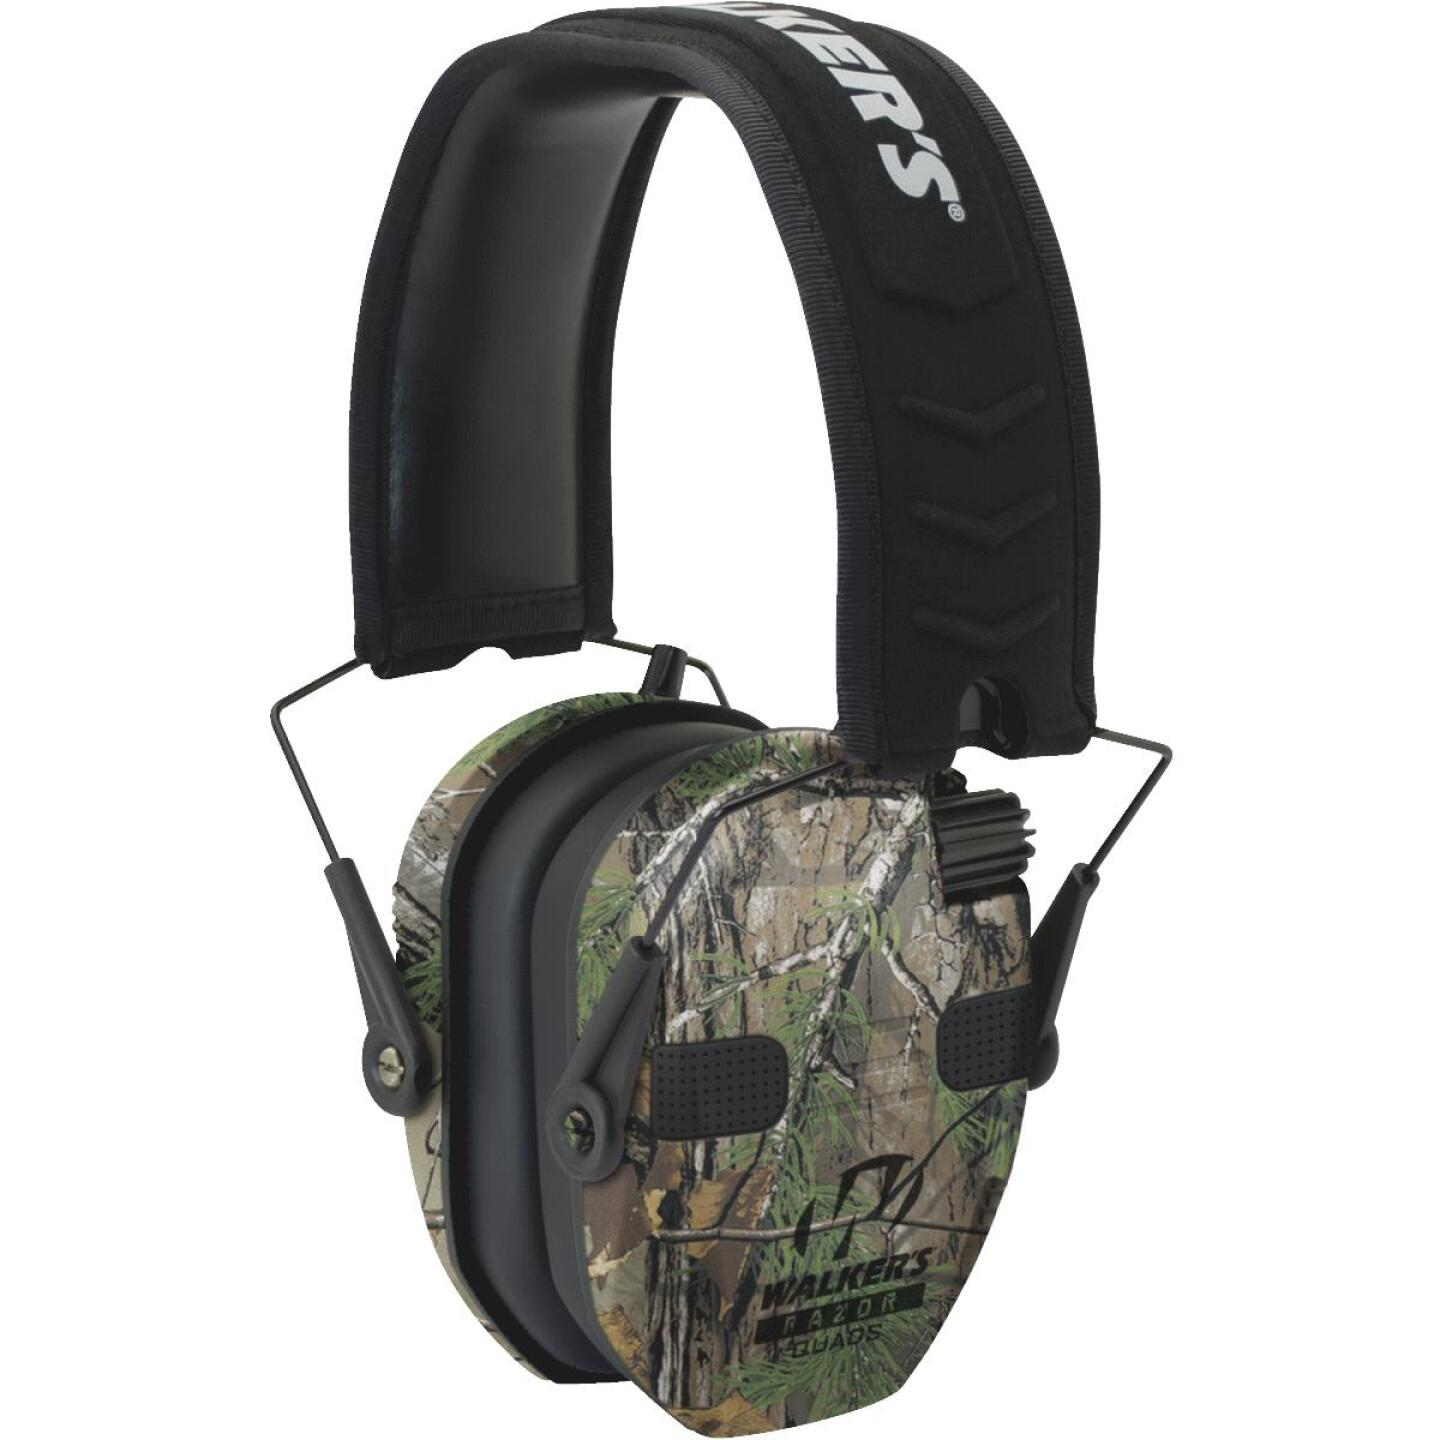 Walker's Razor Series Quad Realtree Xtra Electronic Earmuffs Image 1